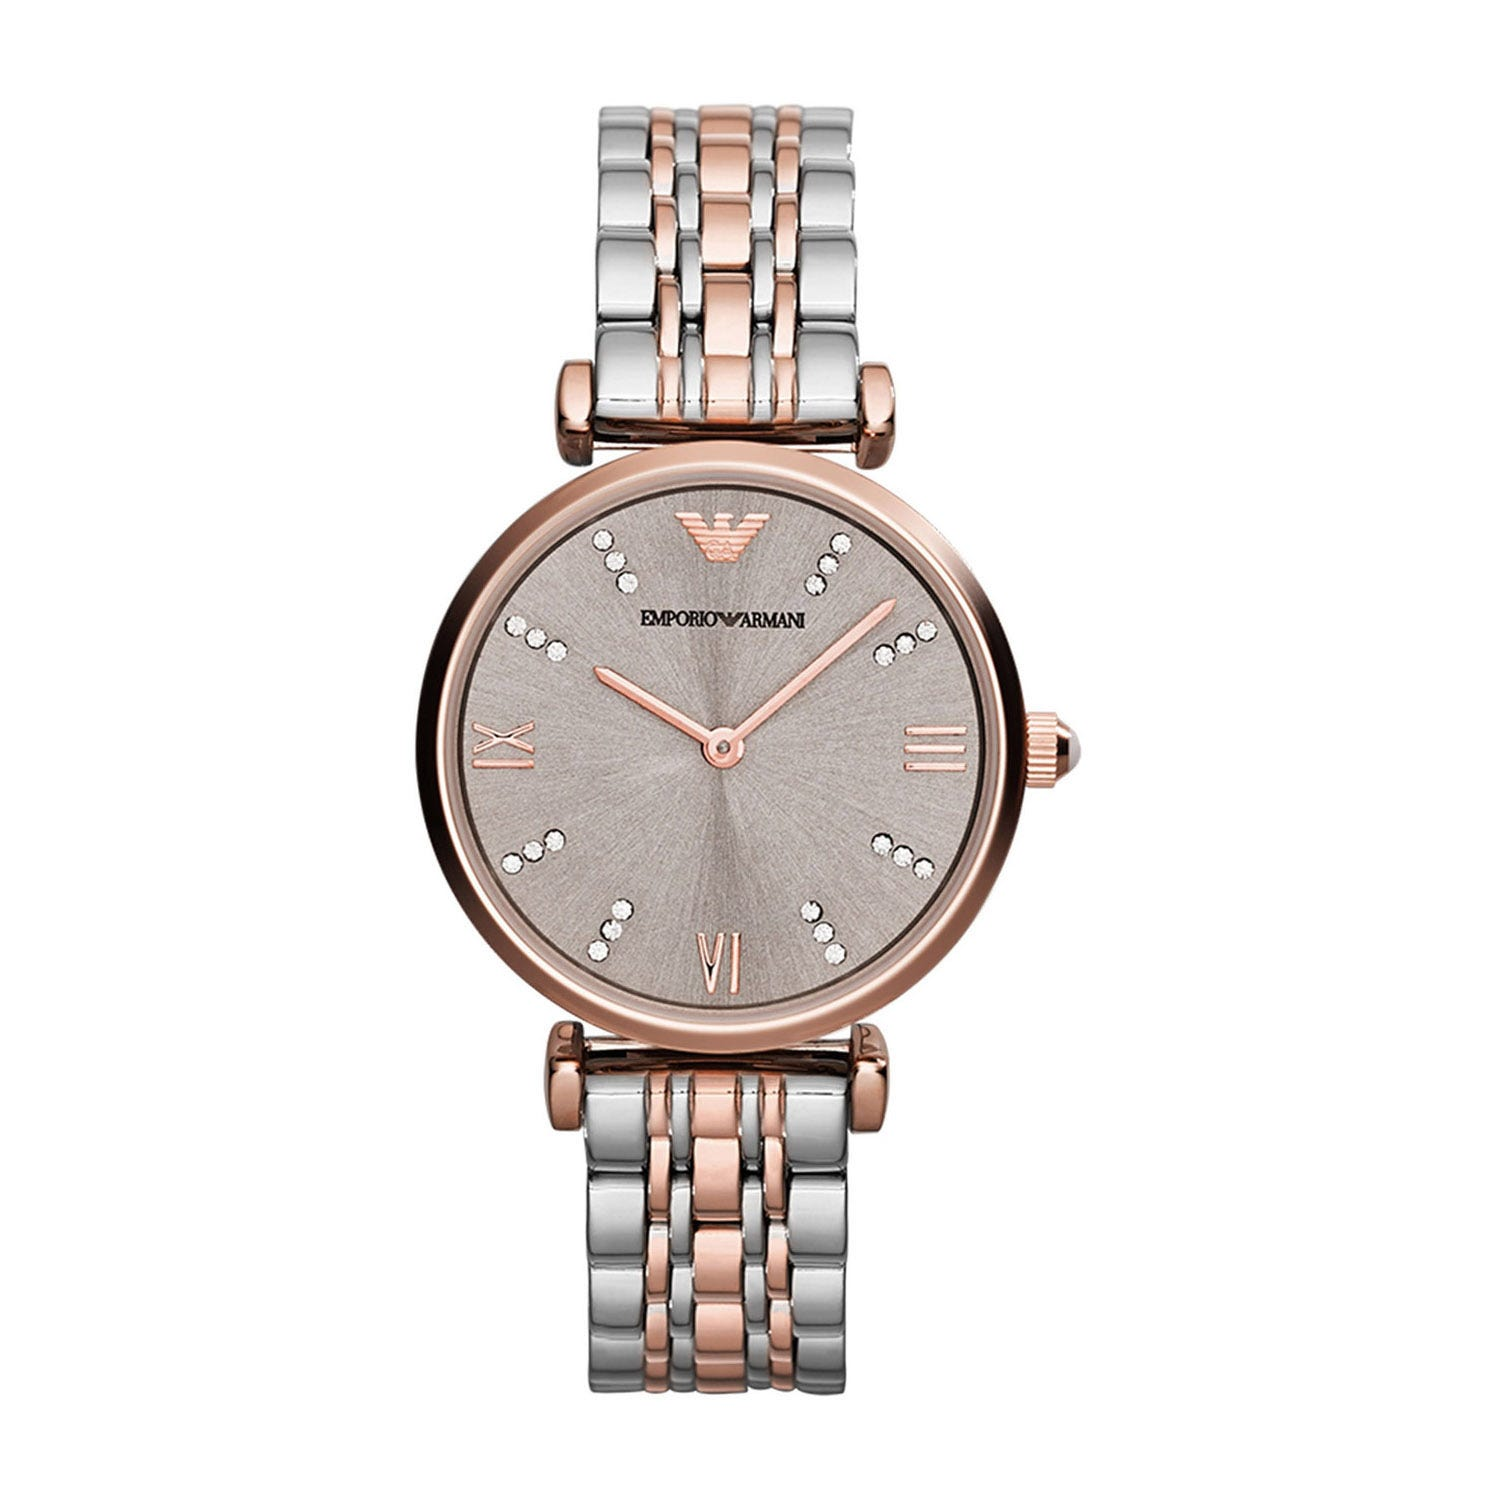 Emporio Armani rose gold-plated two colour bracelet watch